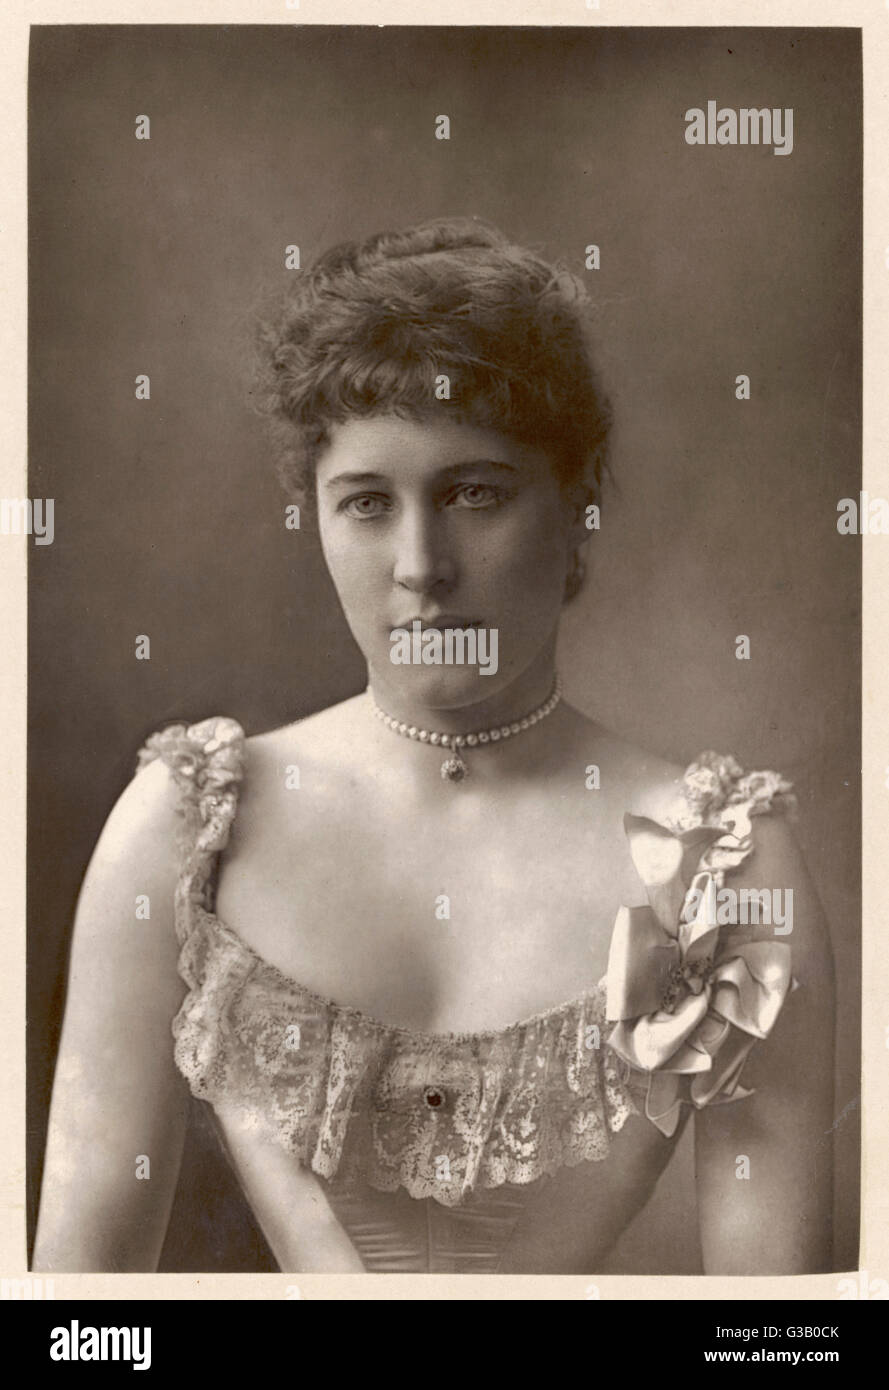 LILY LANGTRY  English actress         Date: 1852 - 1929 - Stock Image